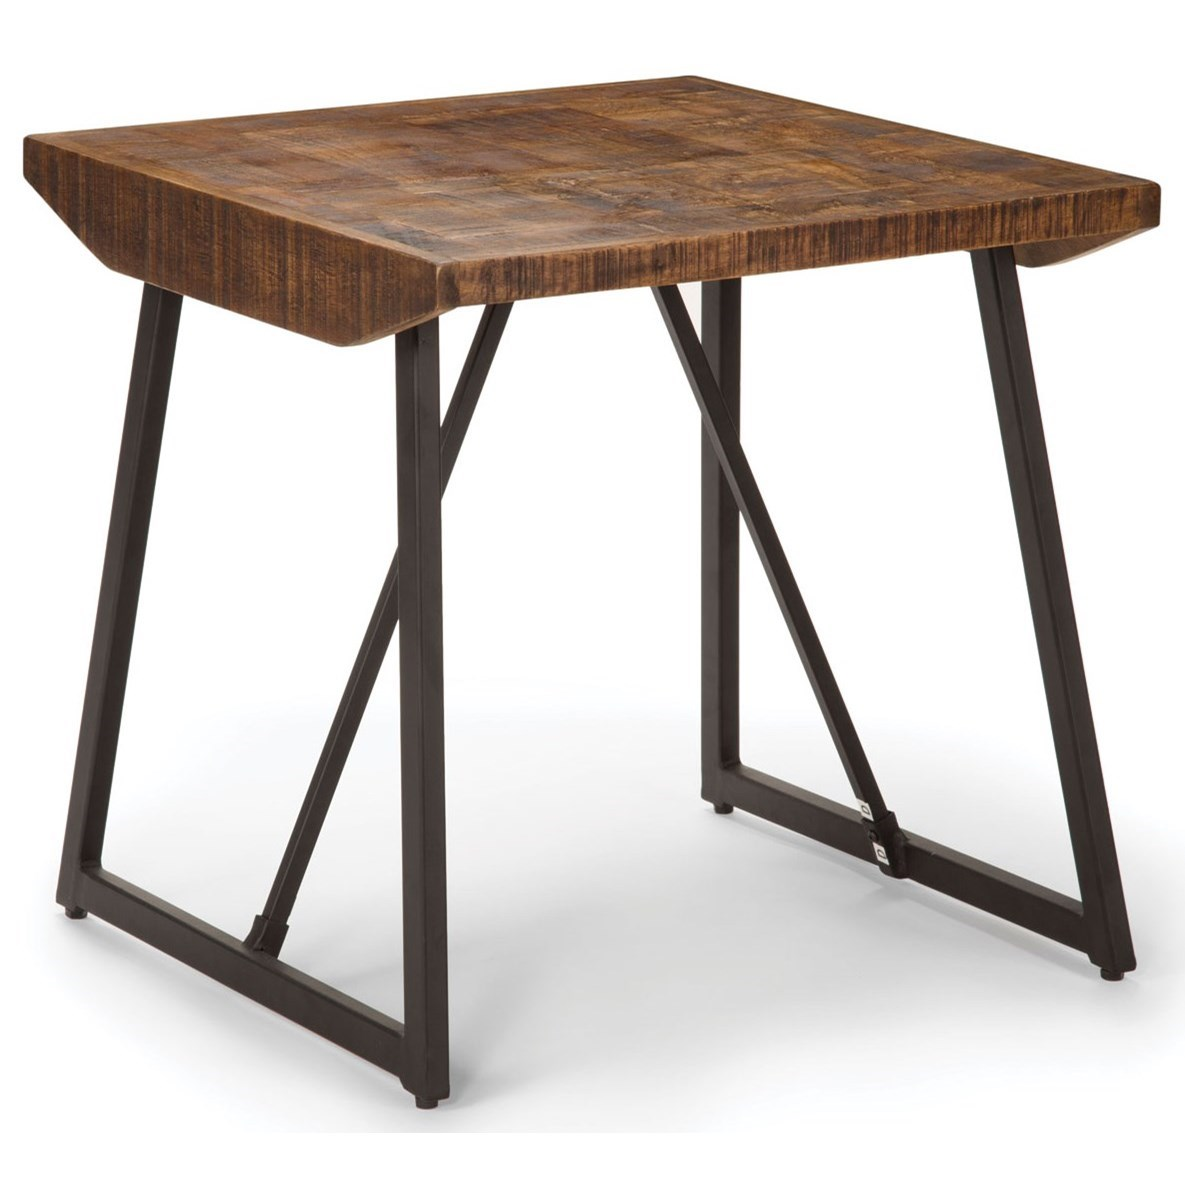 Walden Parquet End Table by Steve Silver at Walker's Furniture